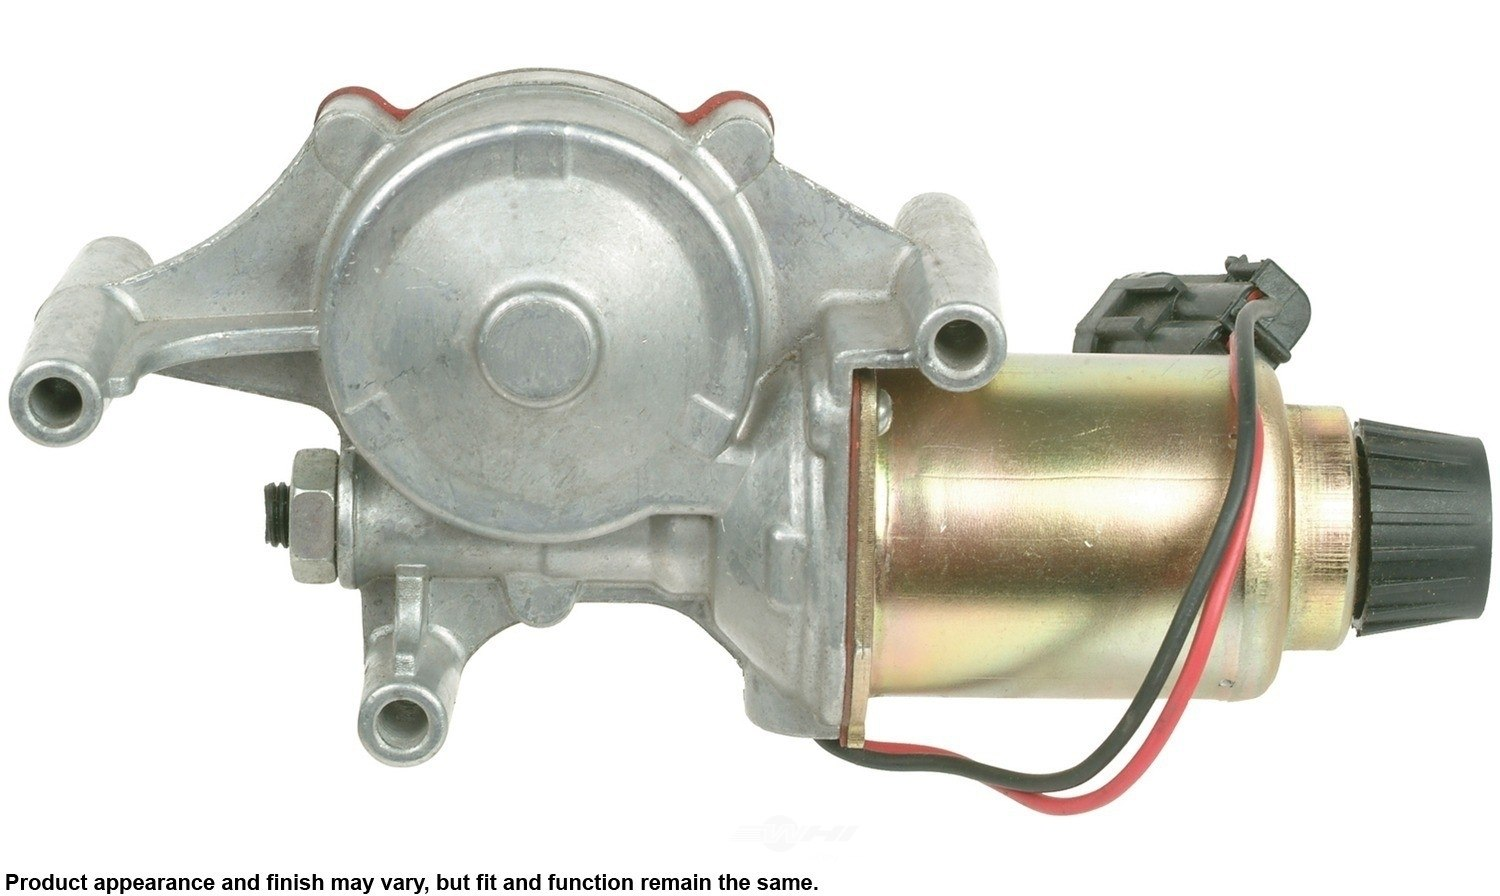 CARDONE NEW - Headlight Motor - A1S 82-9102H